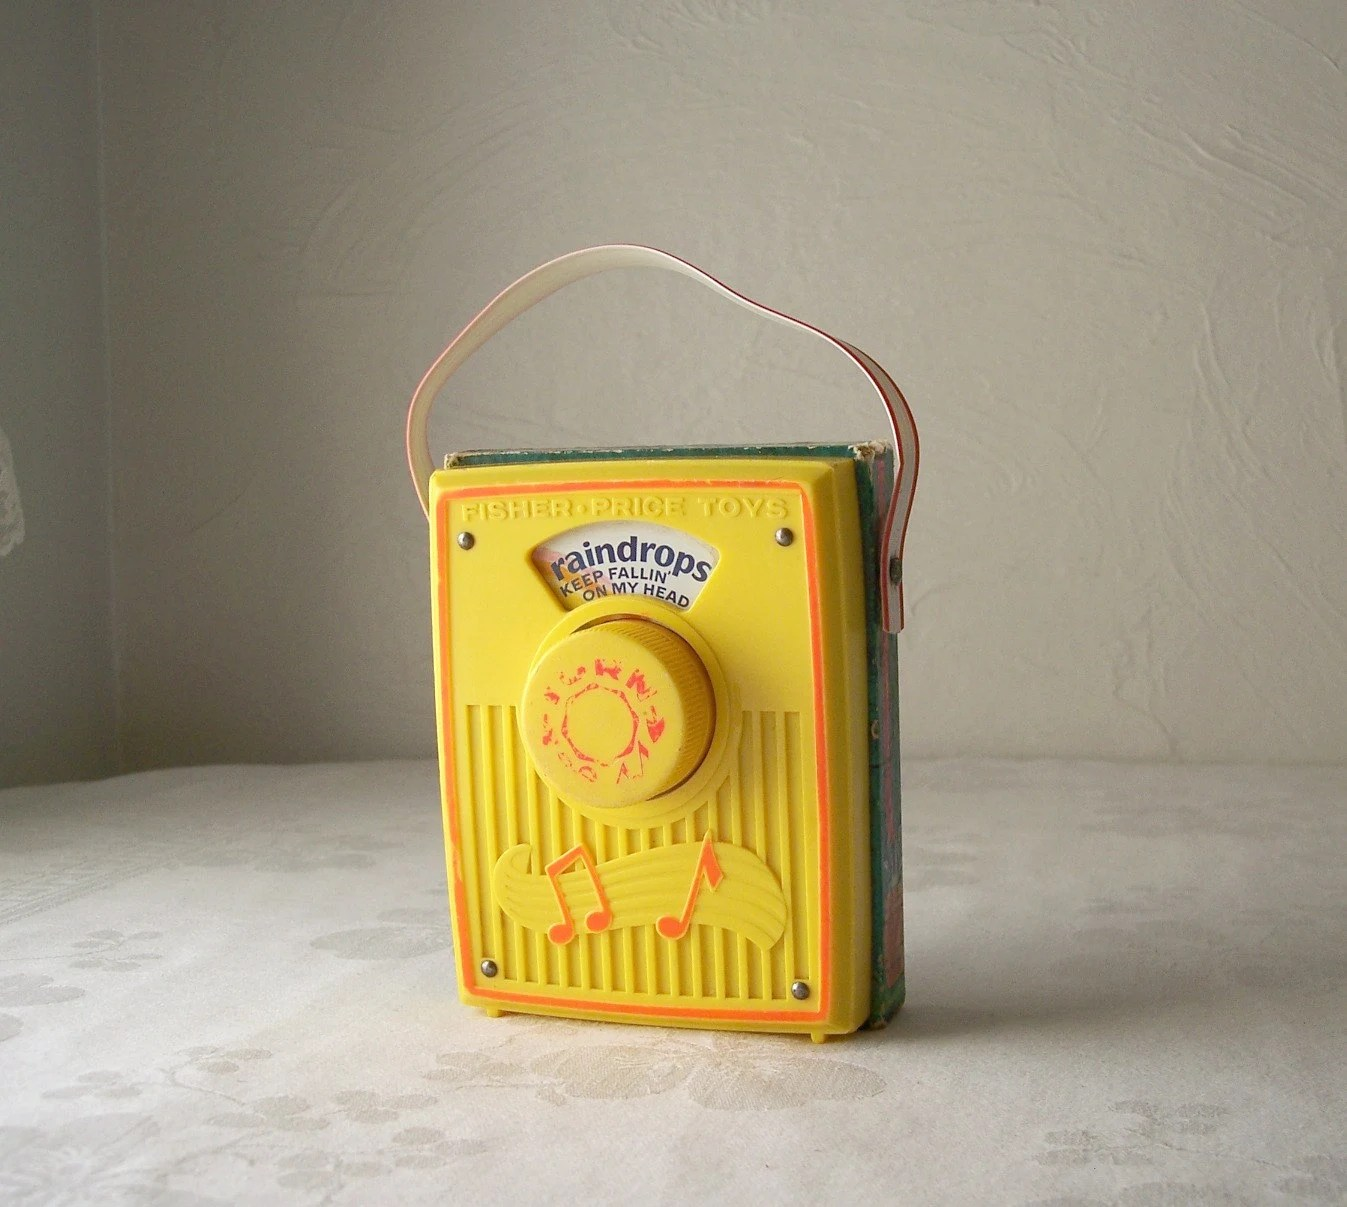 Vintage Fisher Price Pocket Radio Toy S Raindrops Keep